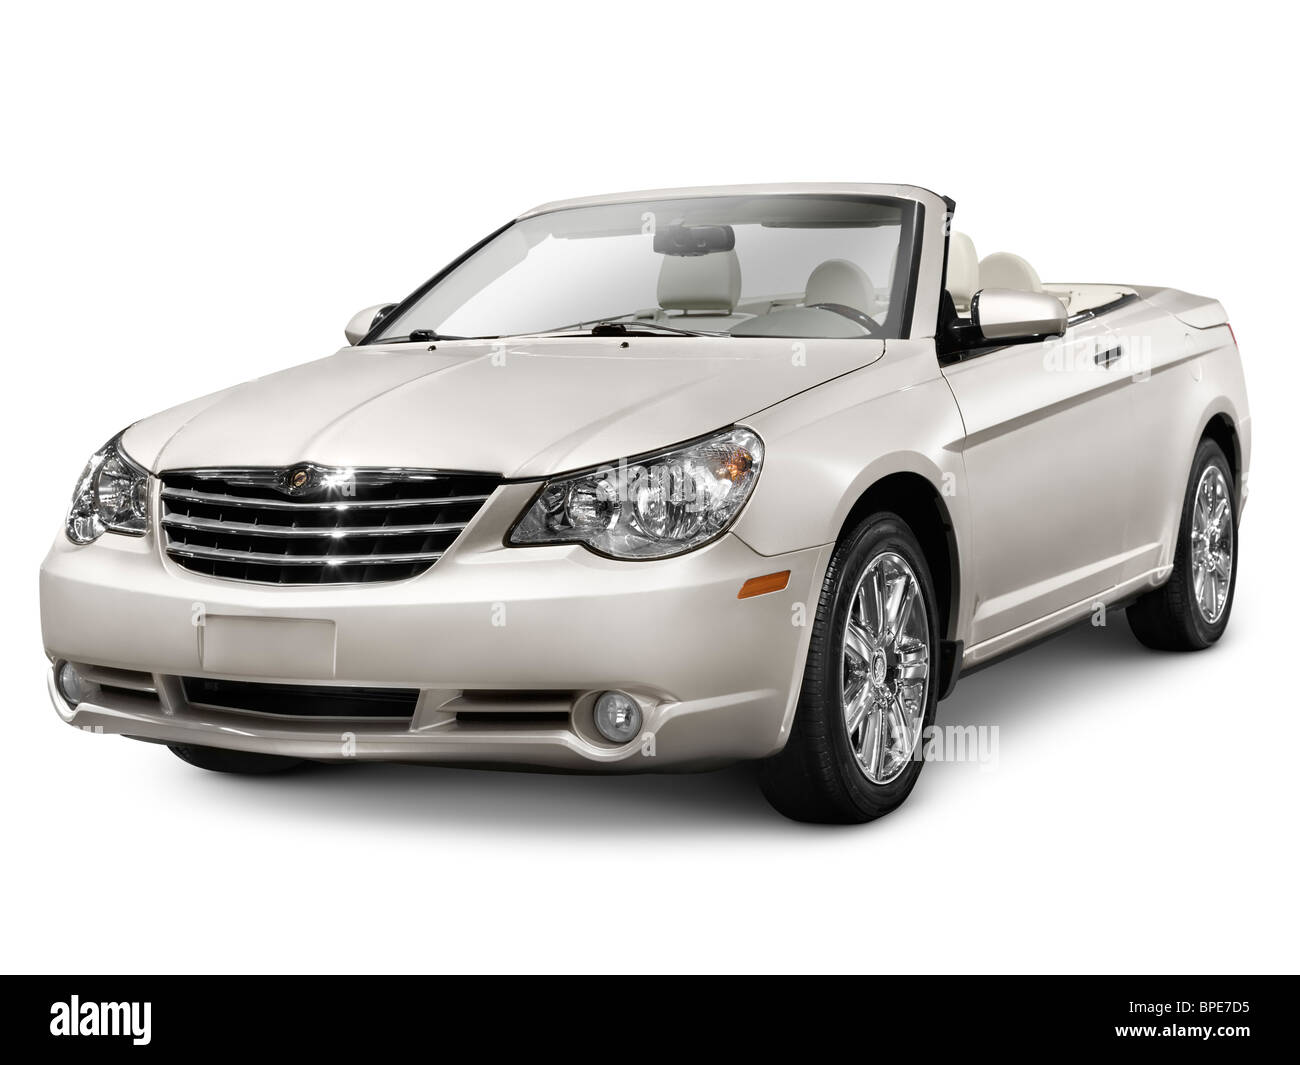 2010 Chrysler Sebring Convertible Limited. Isolated car on white background with clipping path. - Stock Image